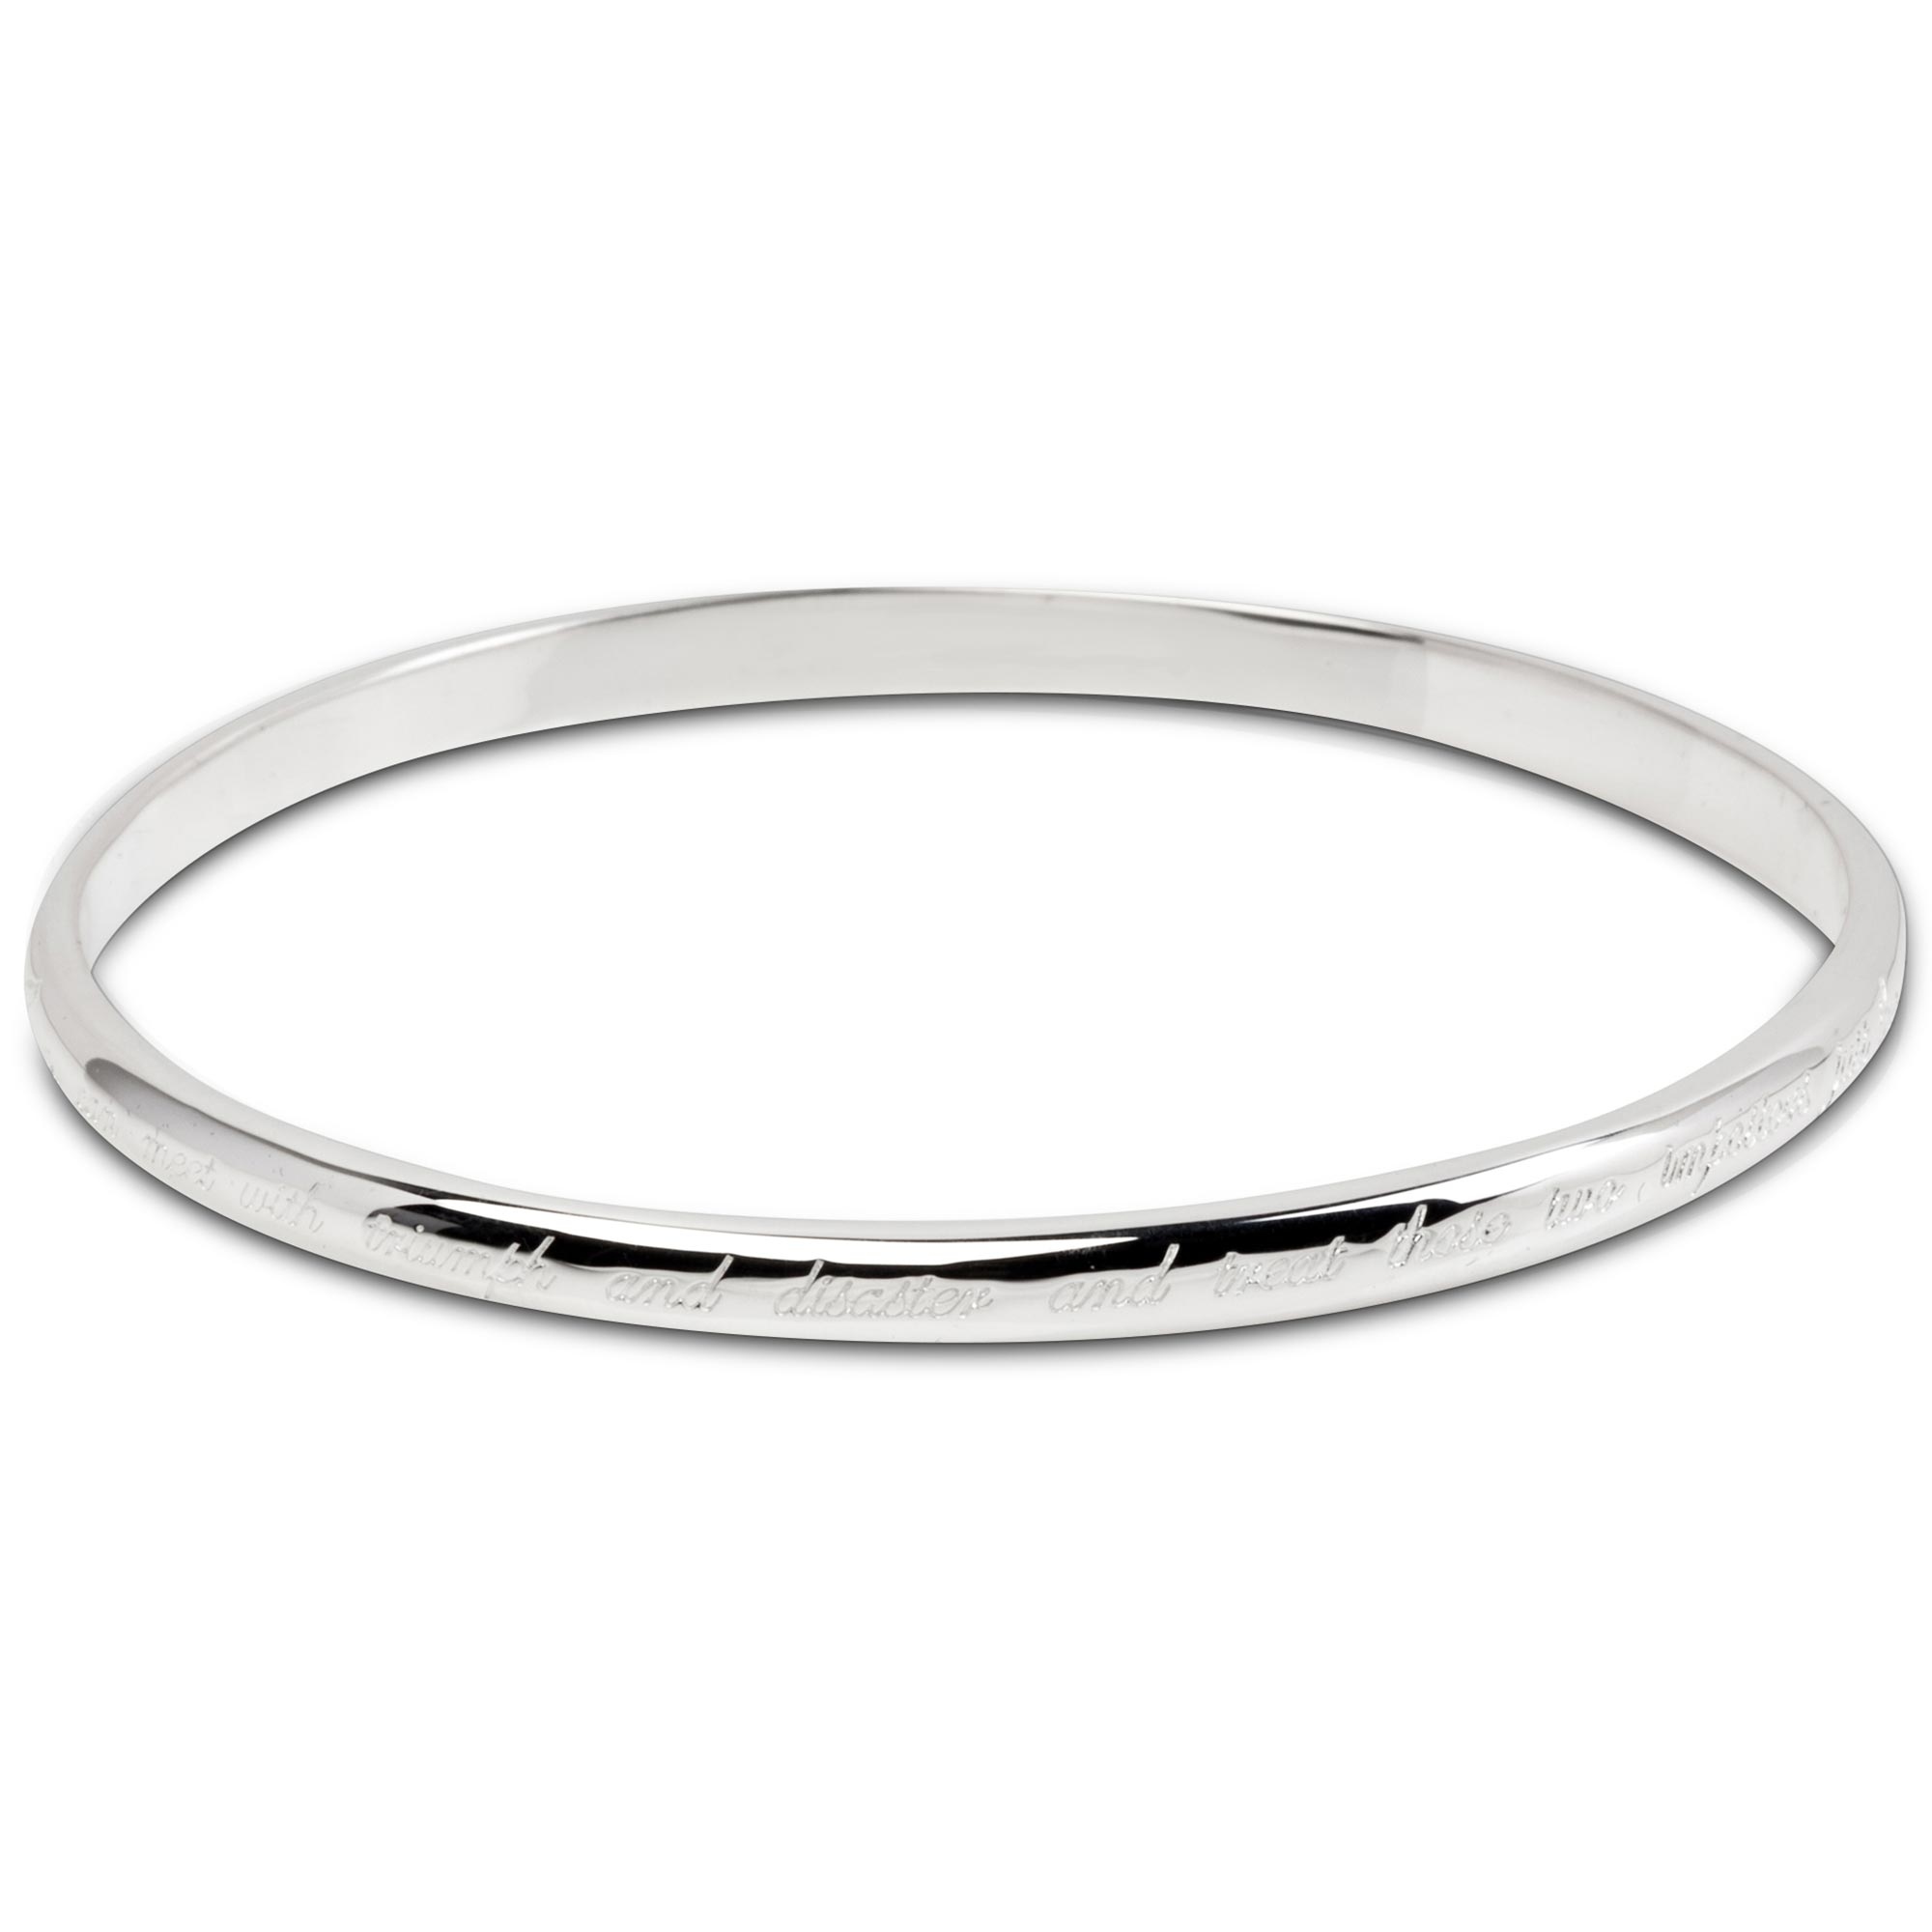 Wimbledon Kipling Sterling Silver Bangle